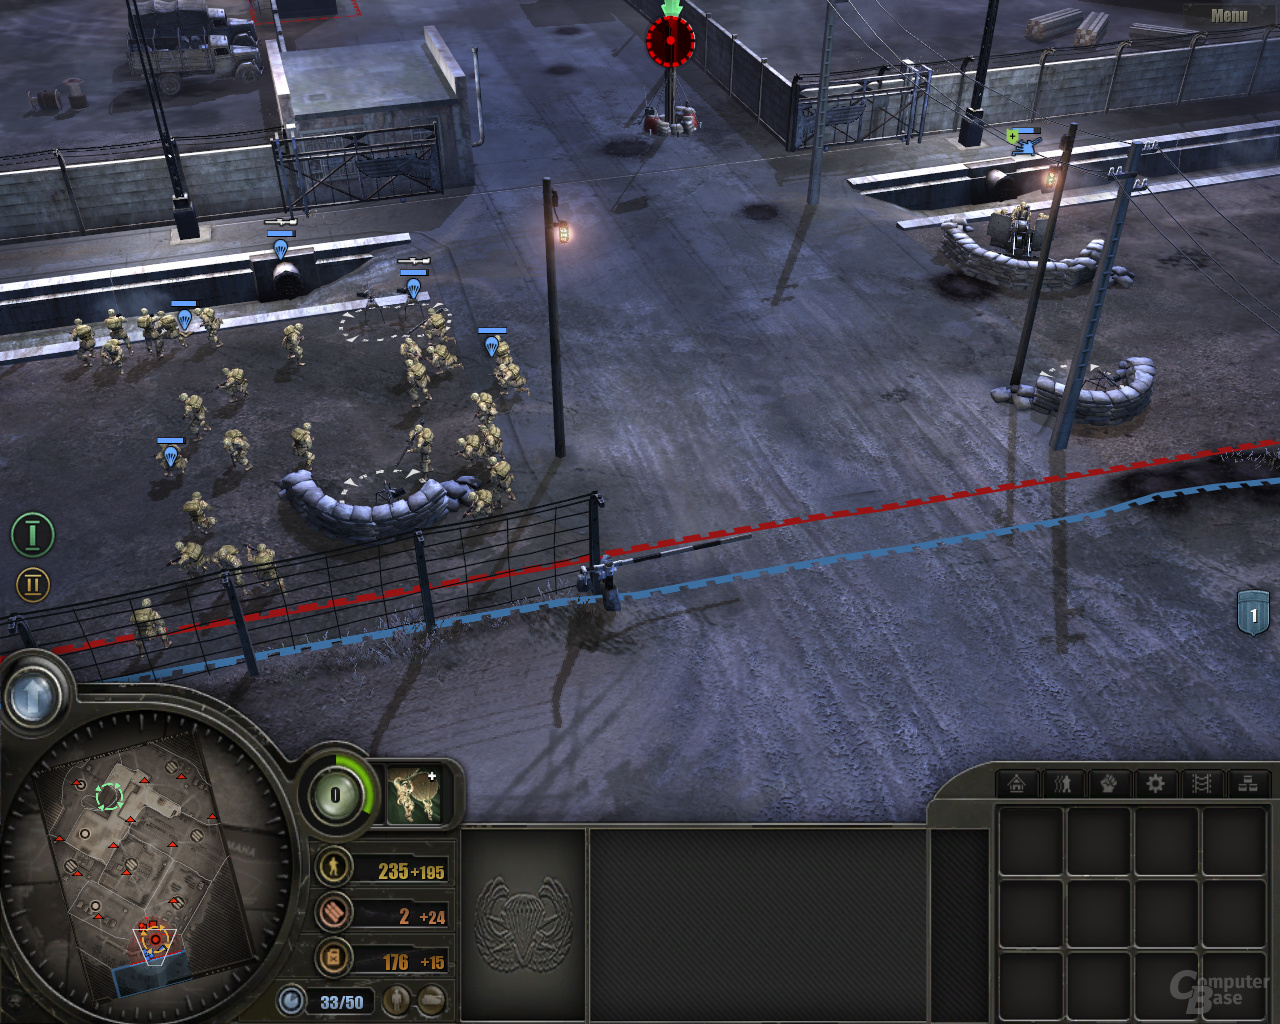 Company of Heroes D3D9 - R600